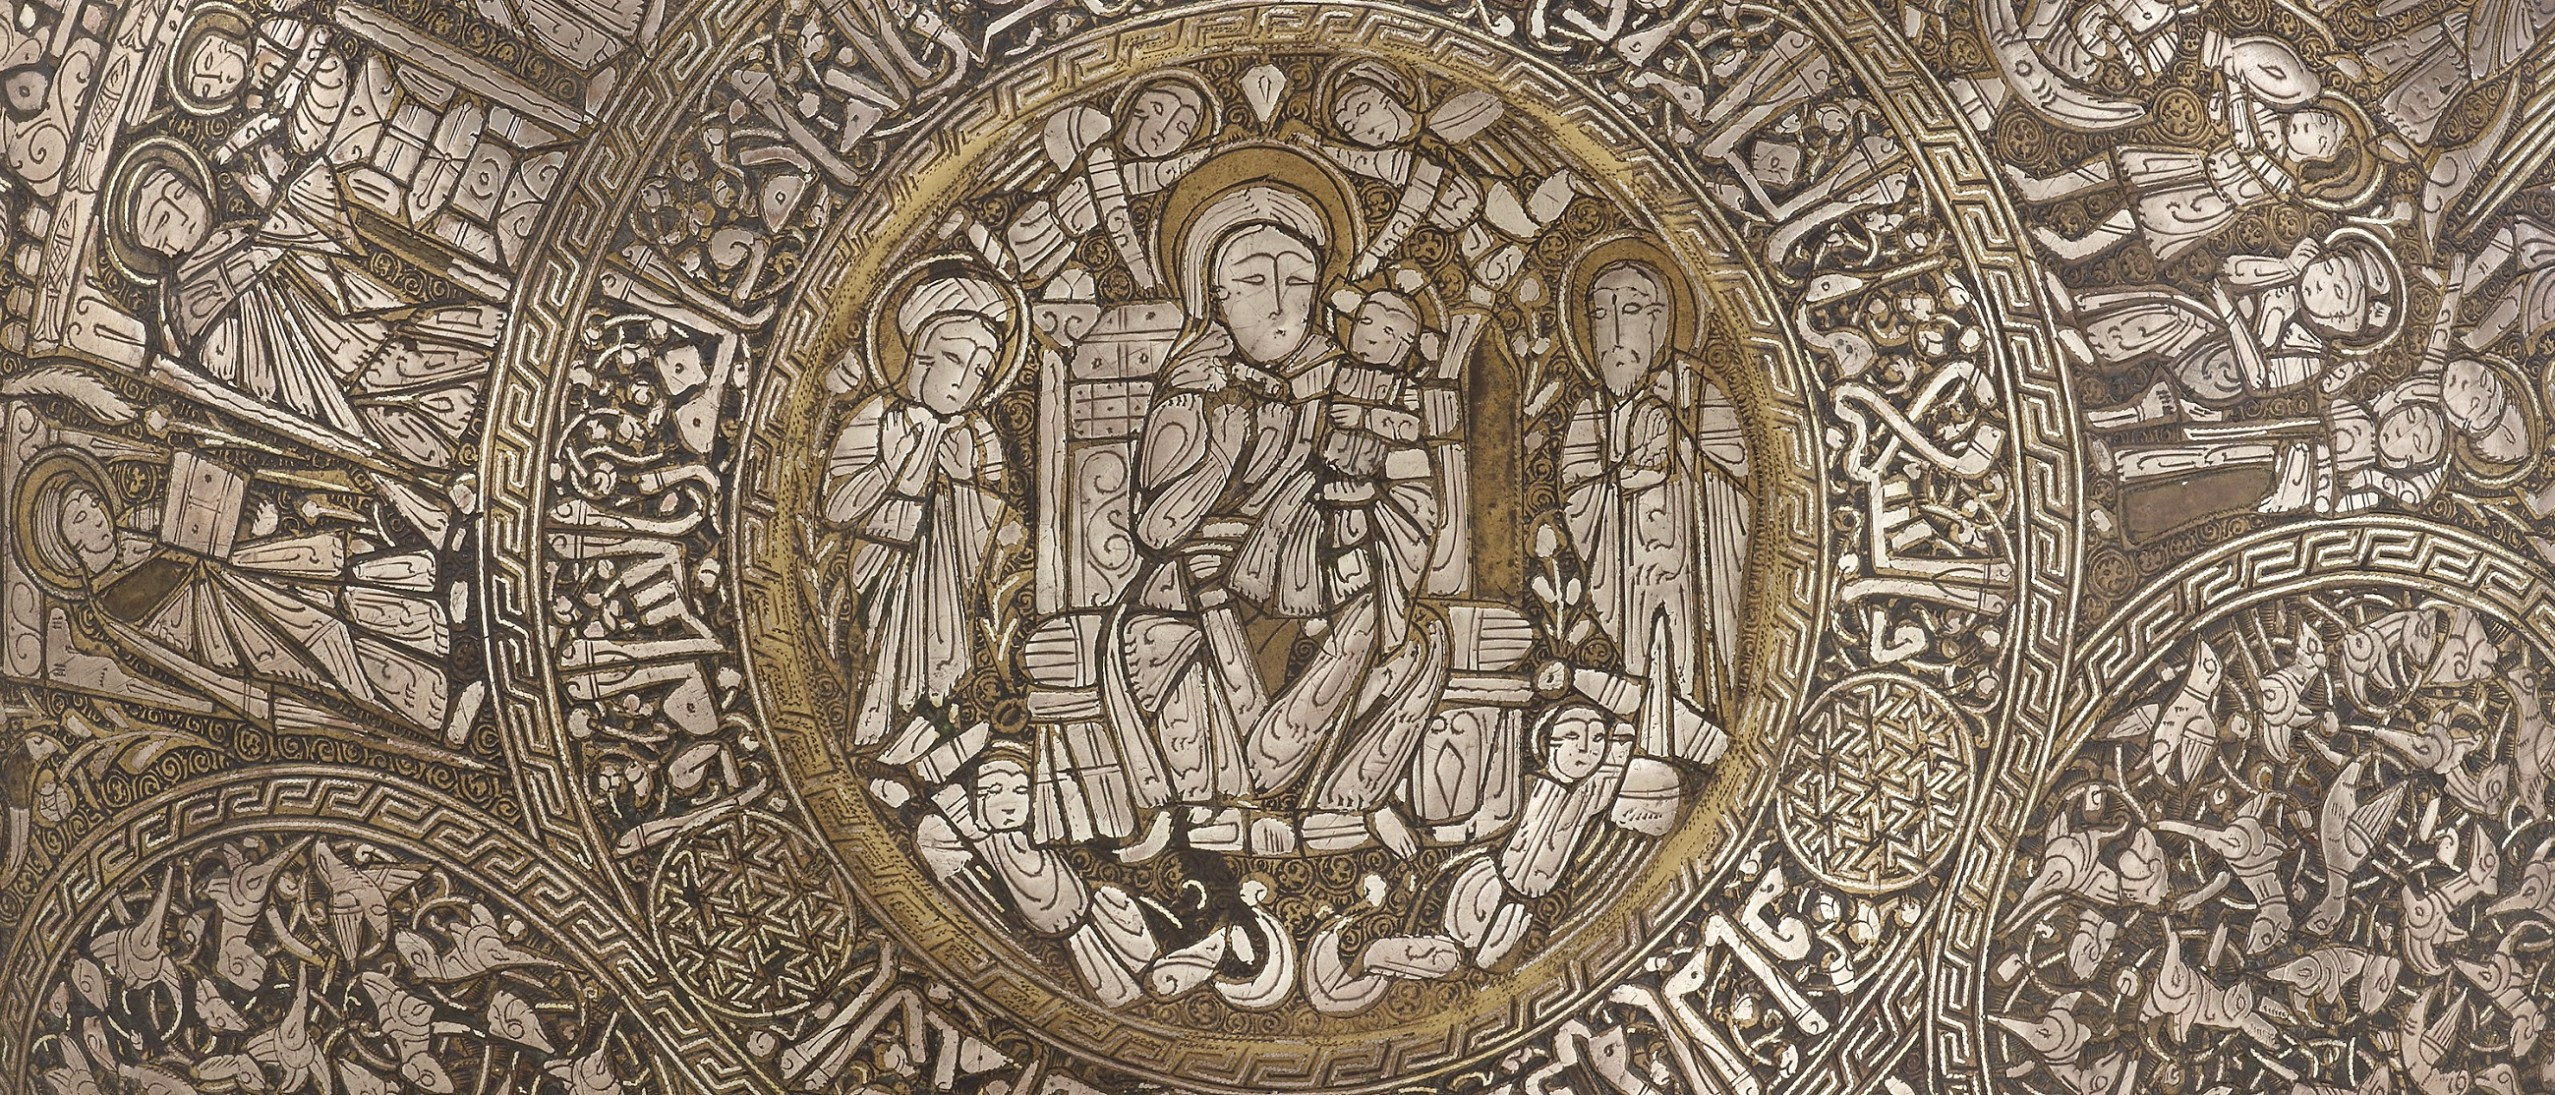 Chased silver detail of Christian imagery, inlaid with gold